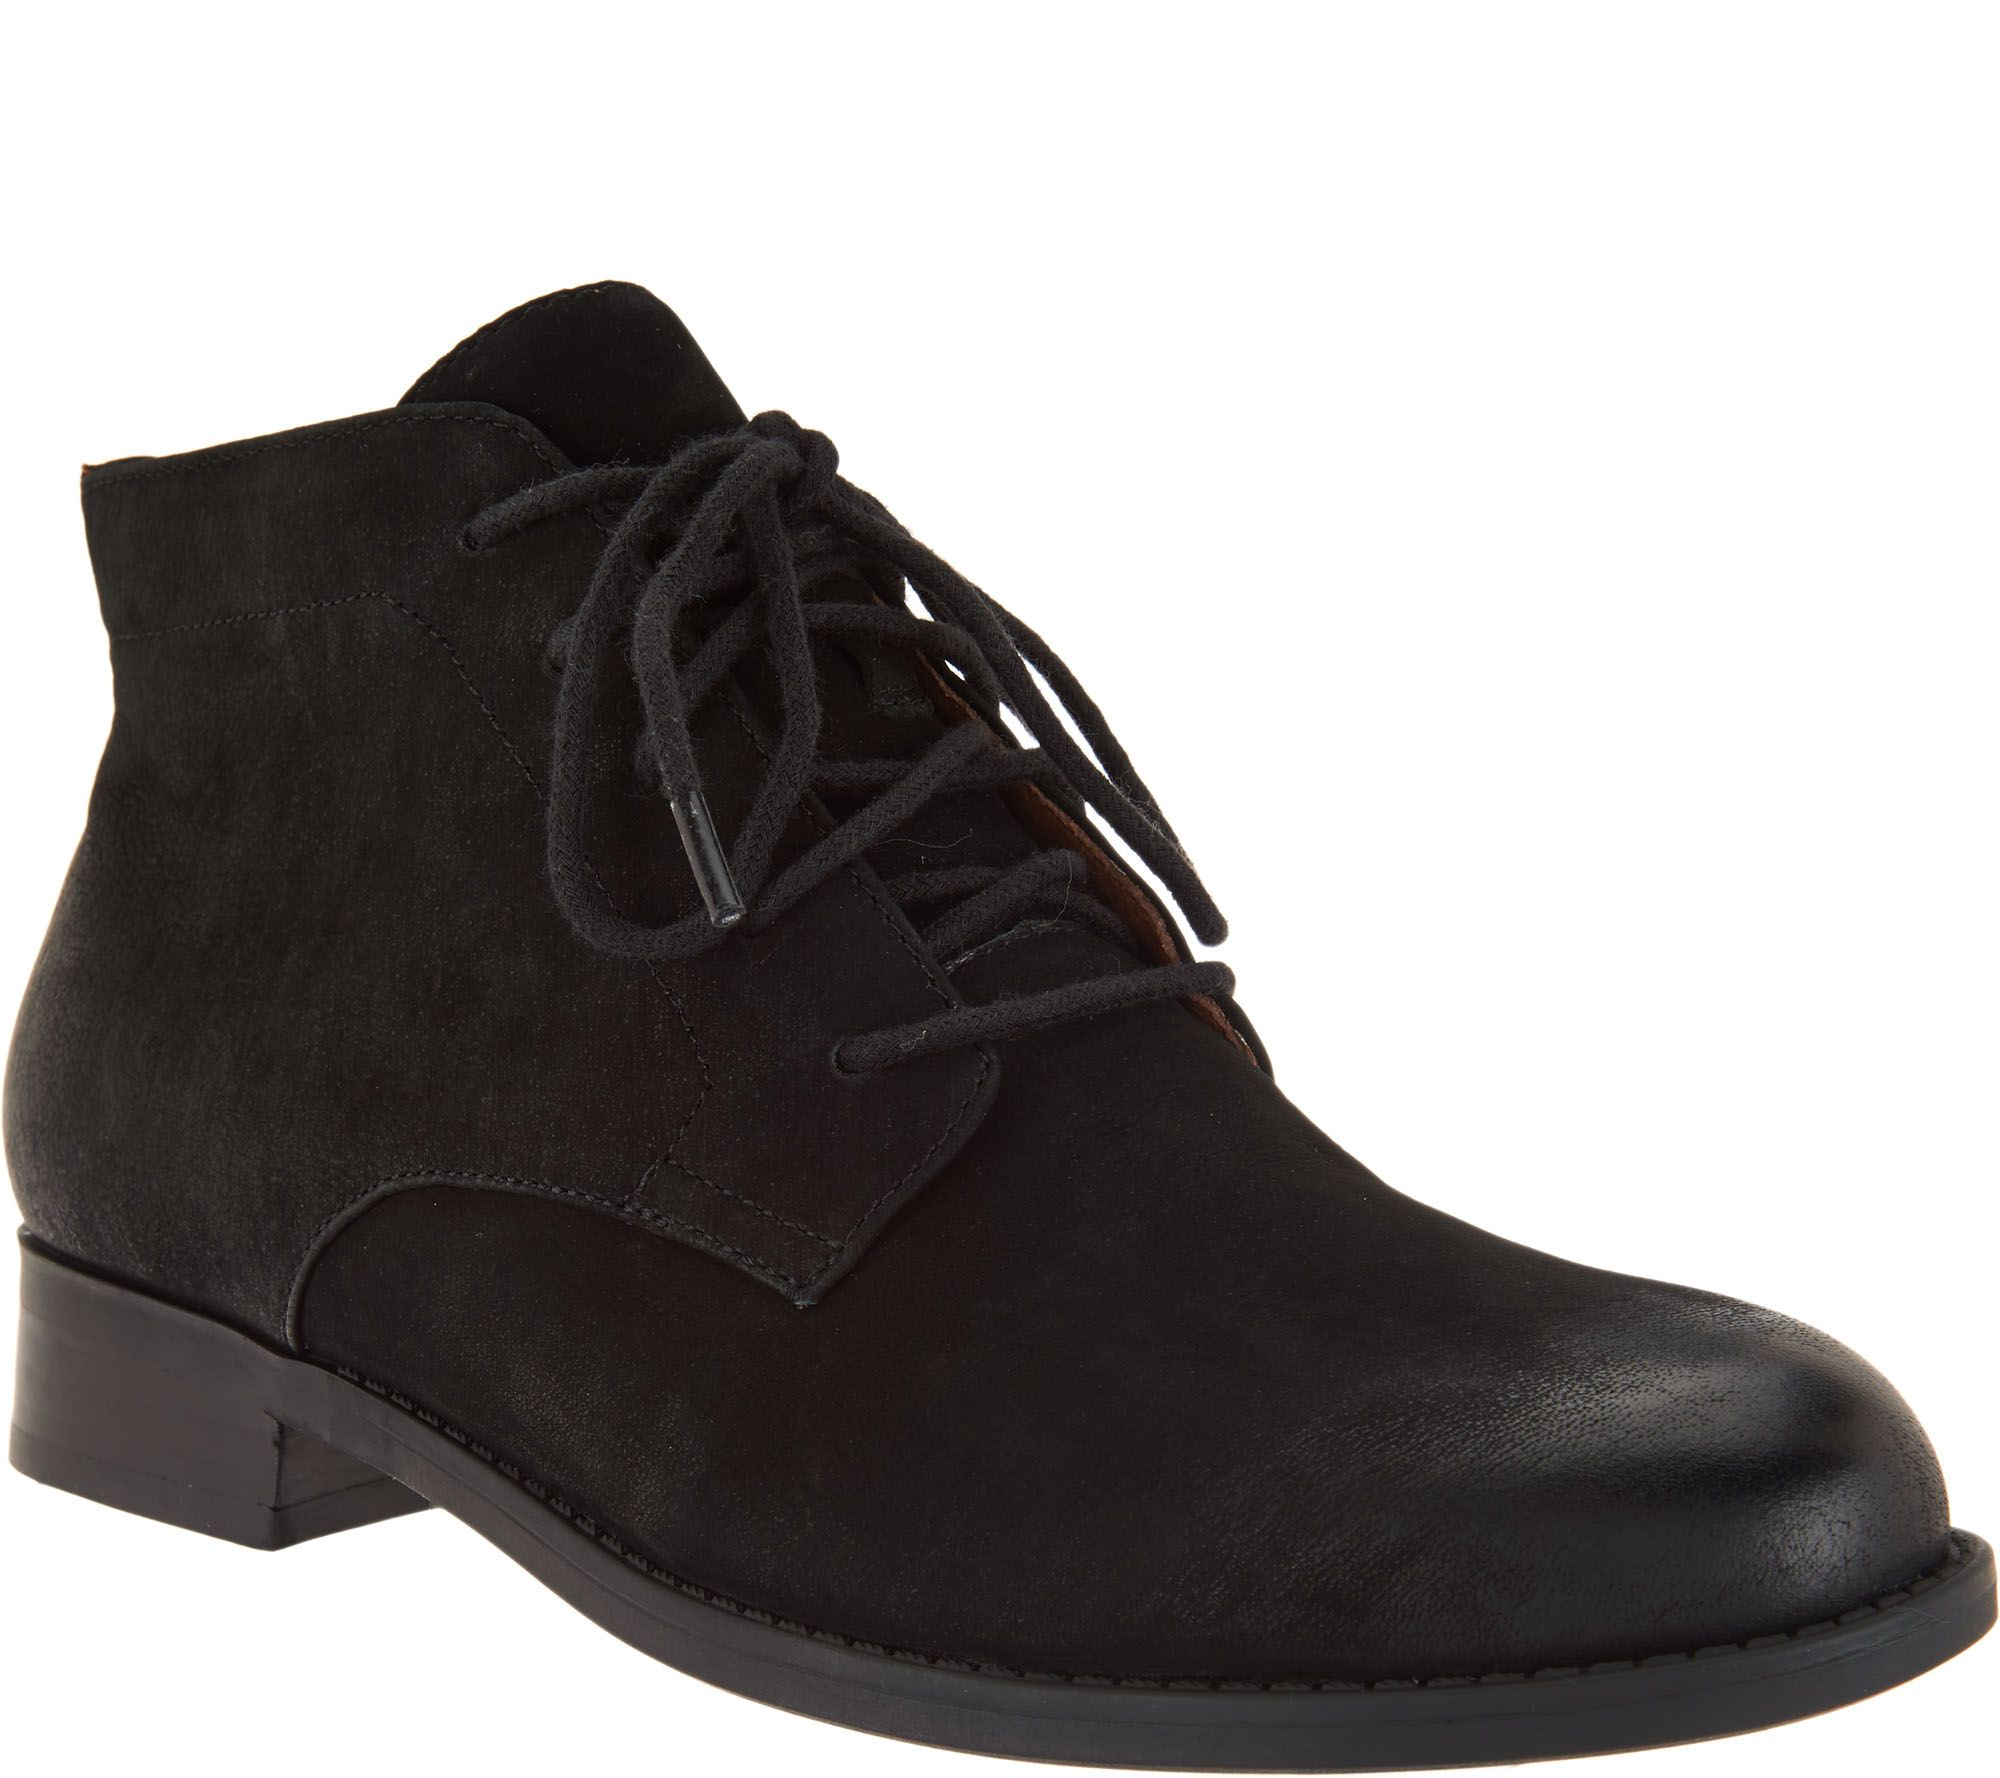 buy cheap shop offer free shipping looking for Vionic Lace-up Ankle Boots - Mira buy cheap amazon reliable cheap price buy cheap tumblr 3zLiT